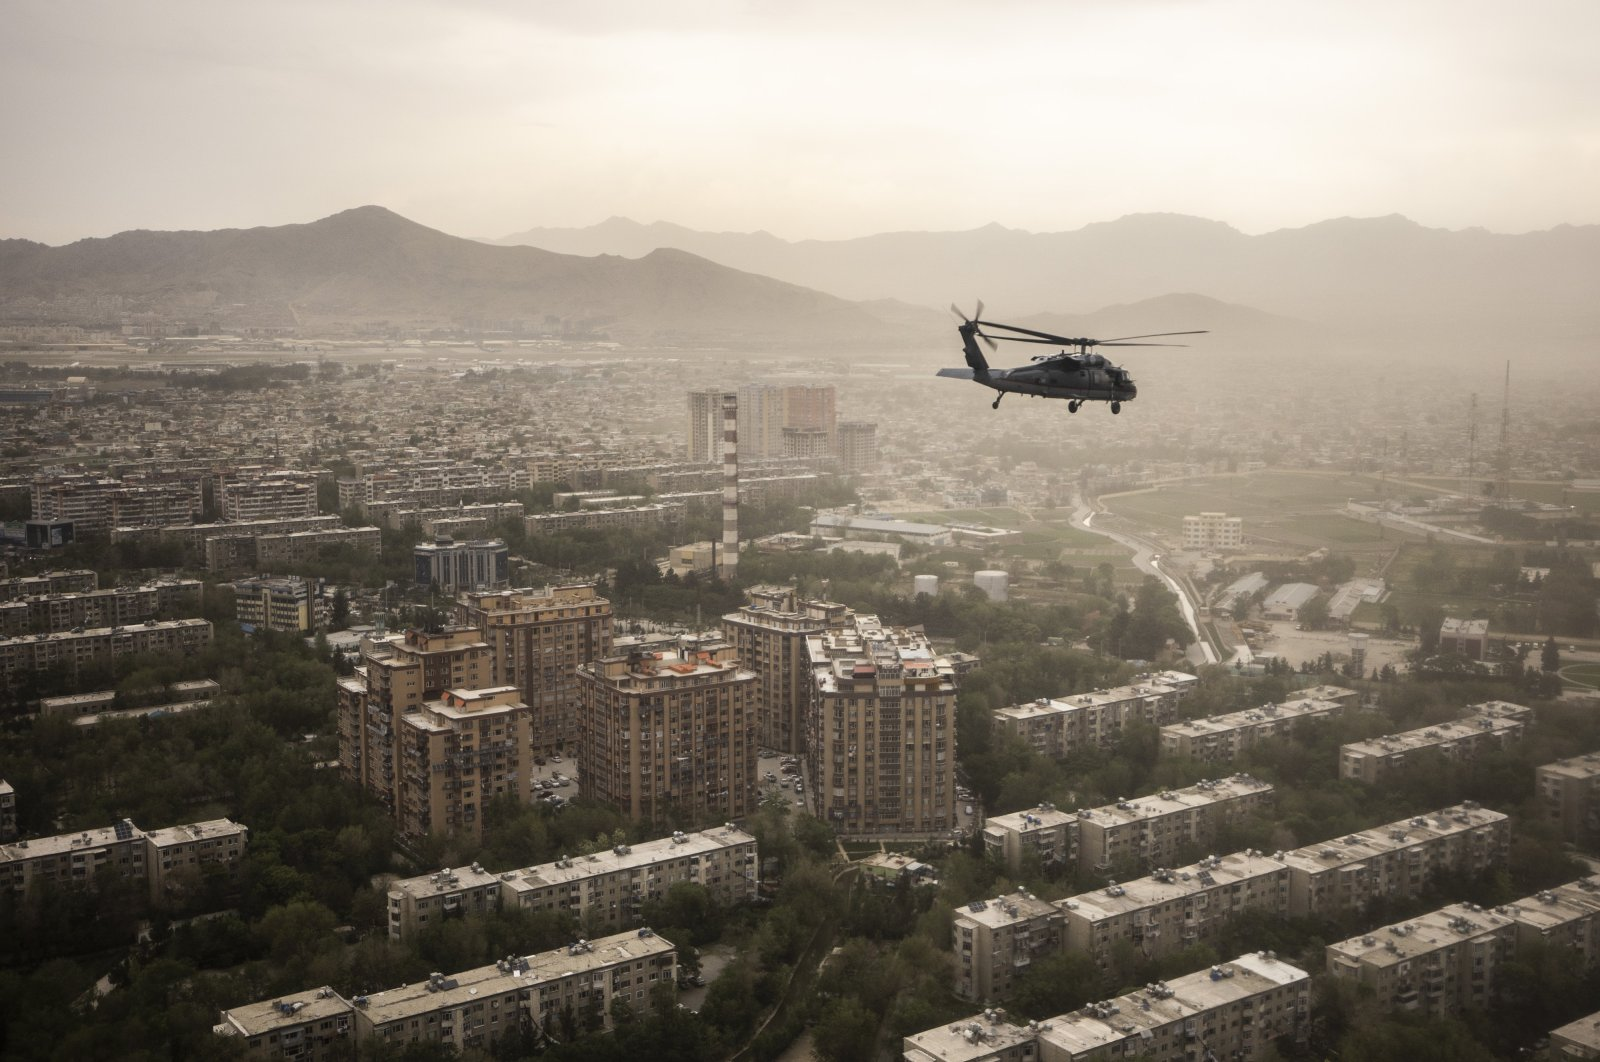 A U.S. Air Force Black Hawk helicopter is pictured in front of the cityscape, in Kabul, Afghanistan, April 29, 2021. (Photo by Getty Images)